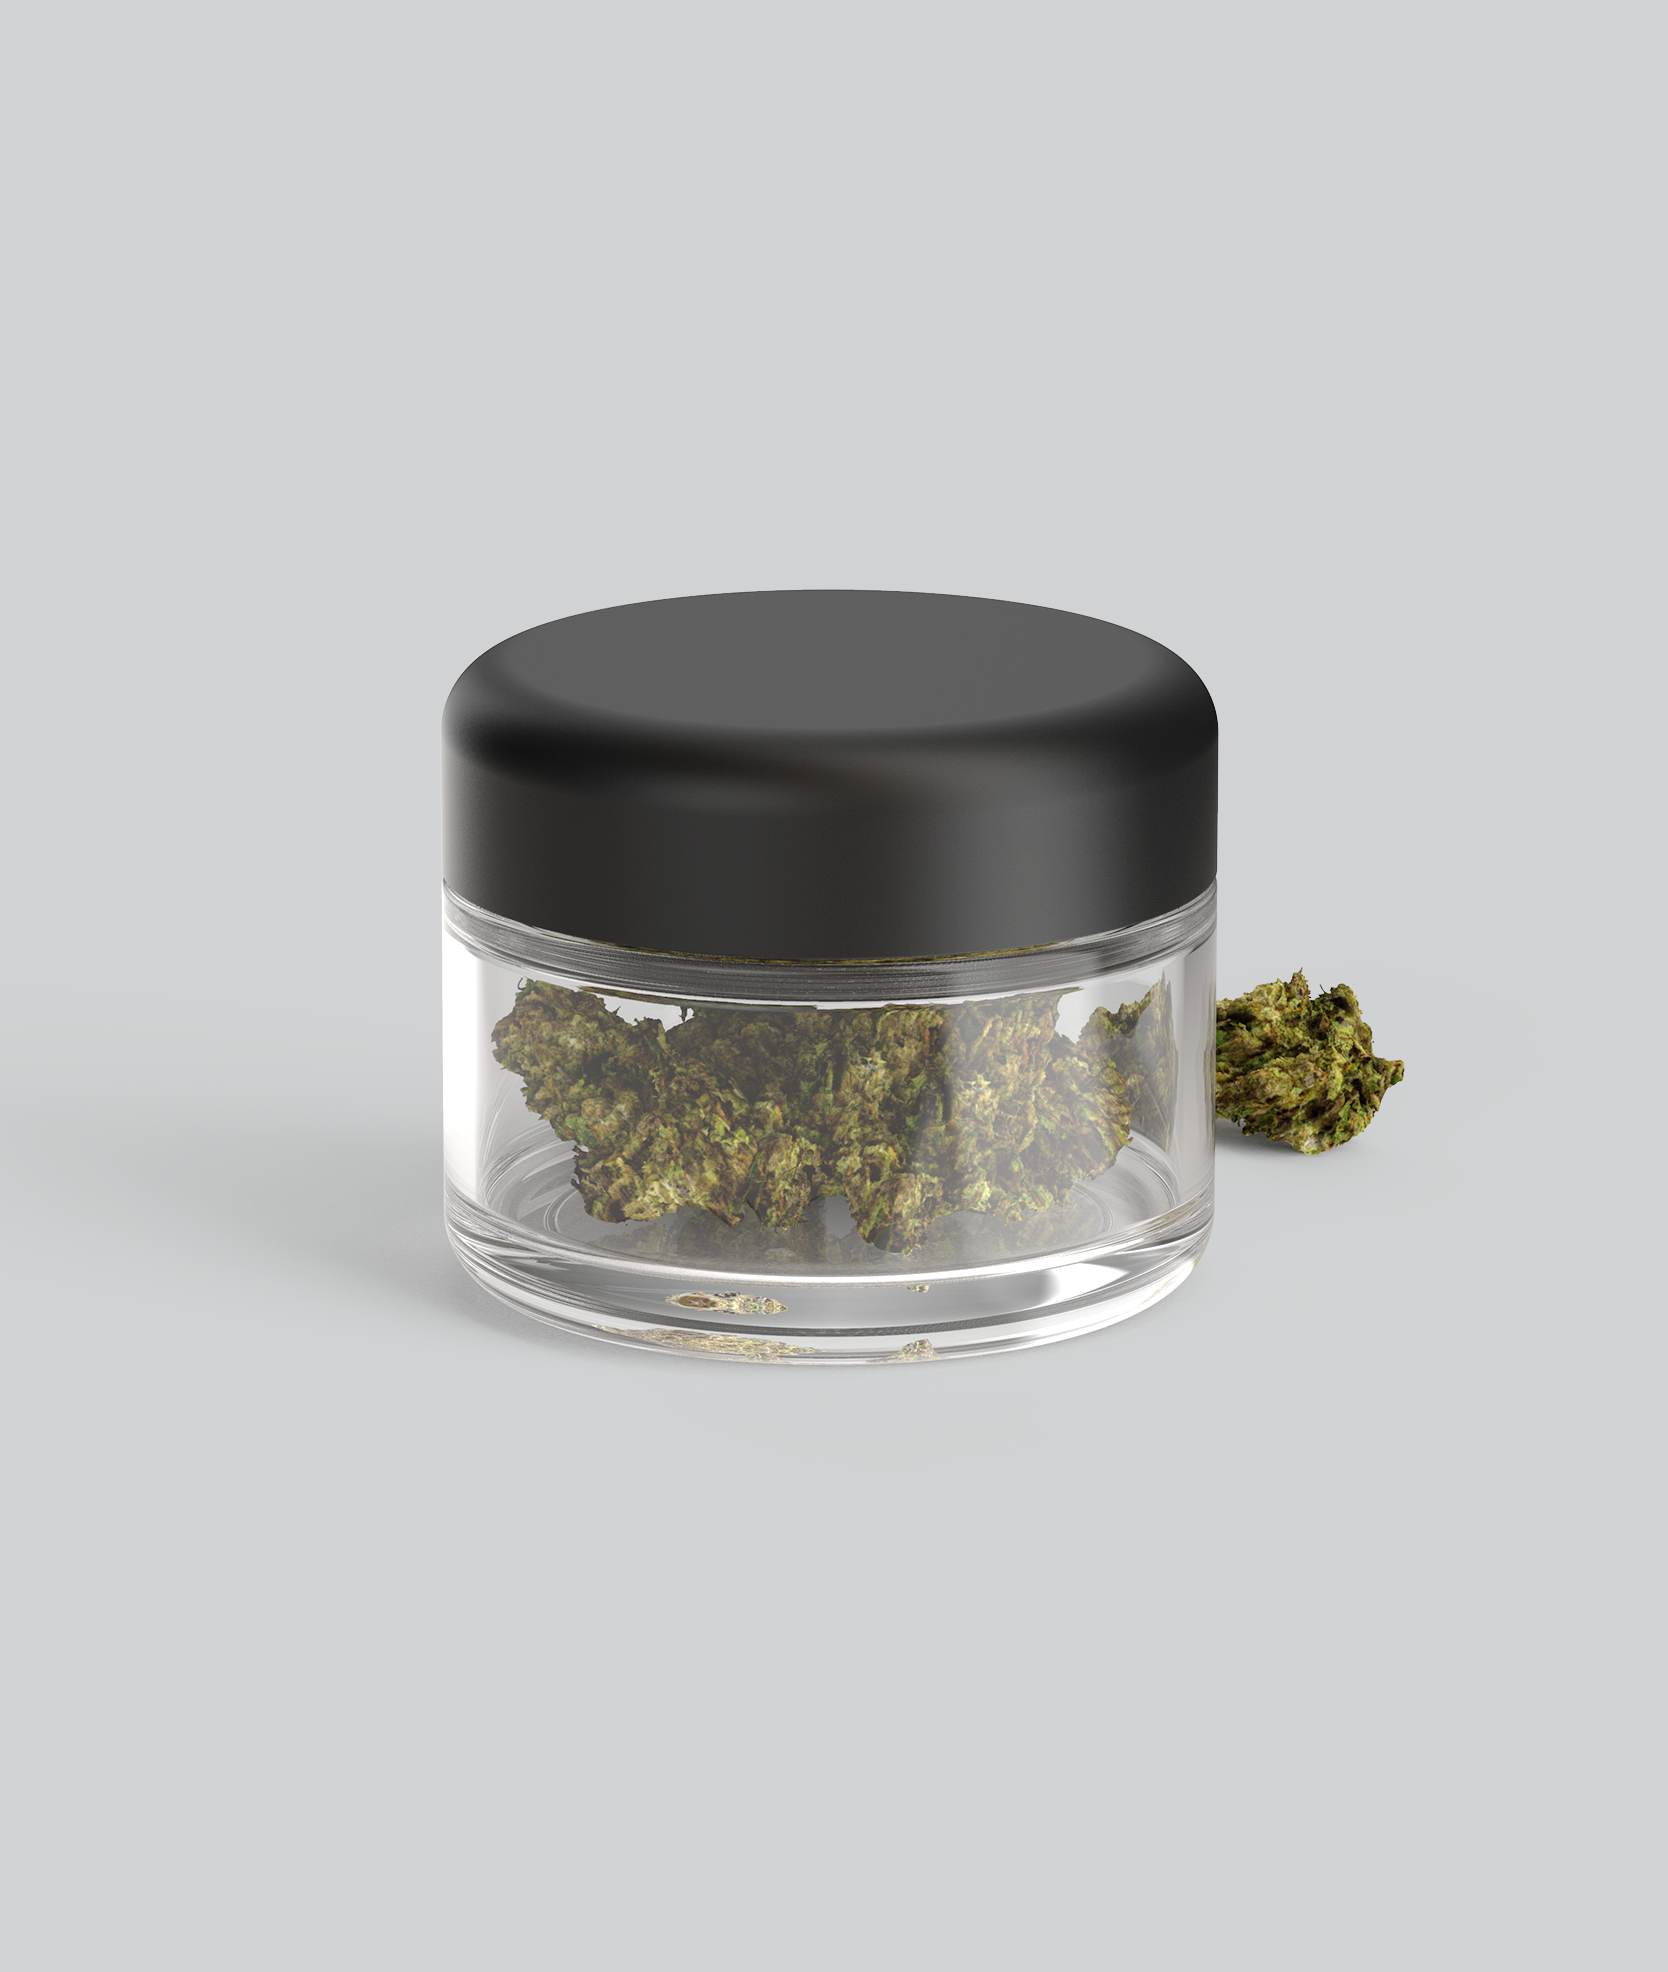 lopro-cannabis-edible-packaging